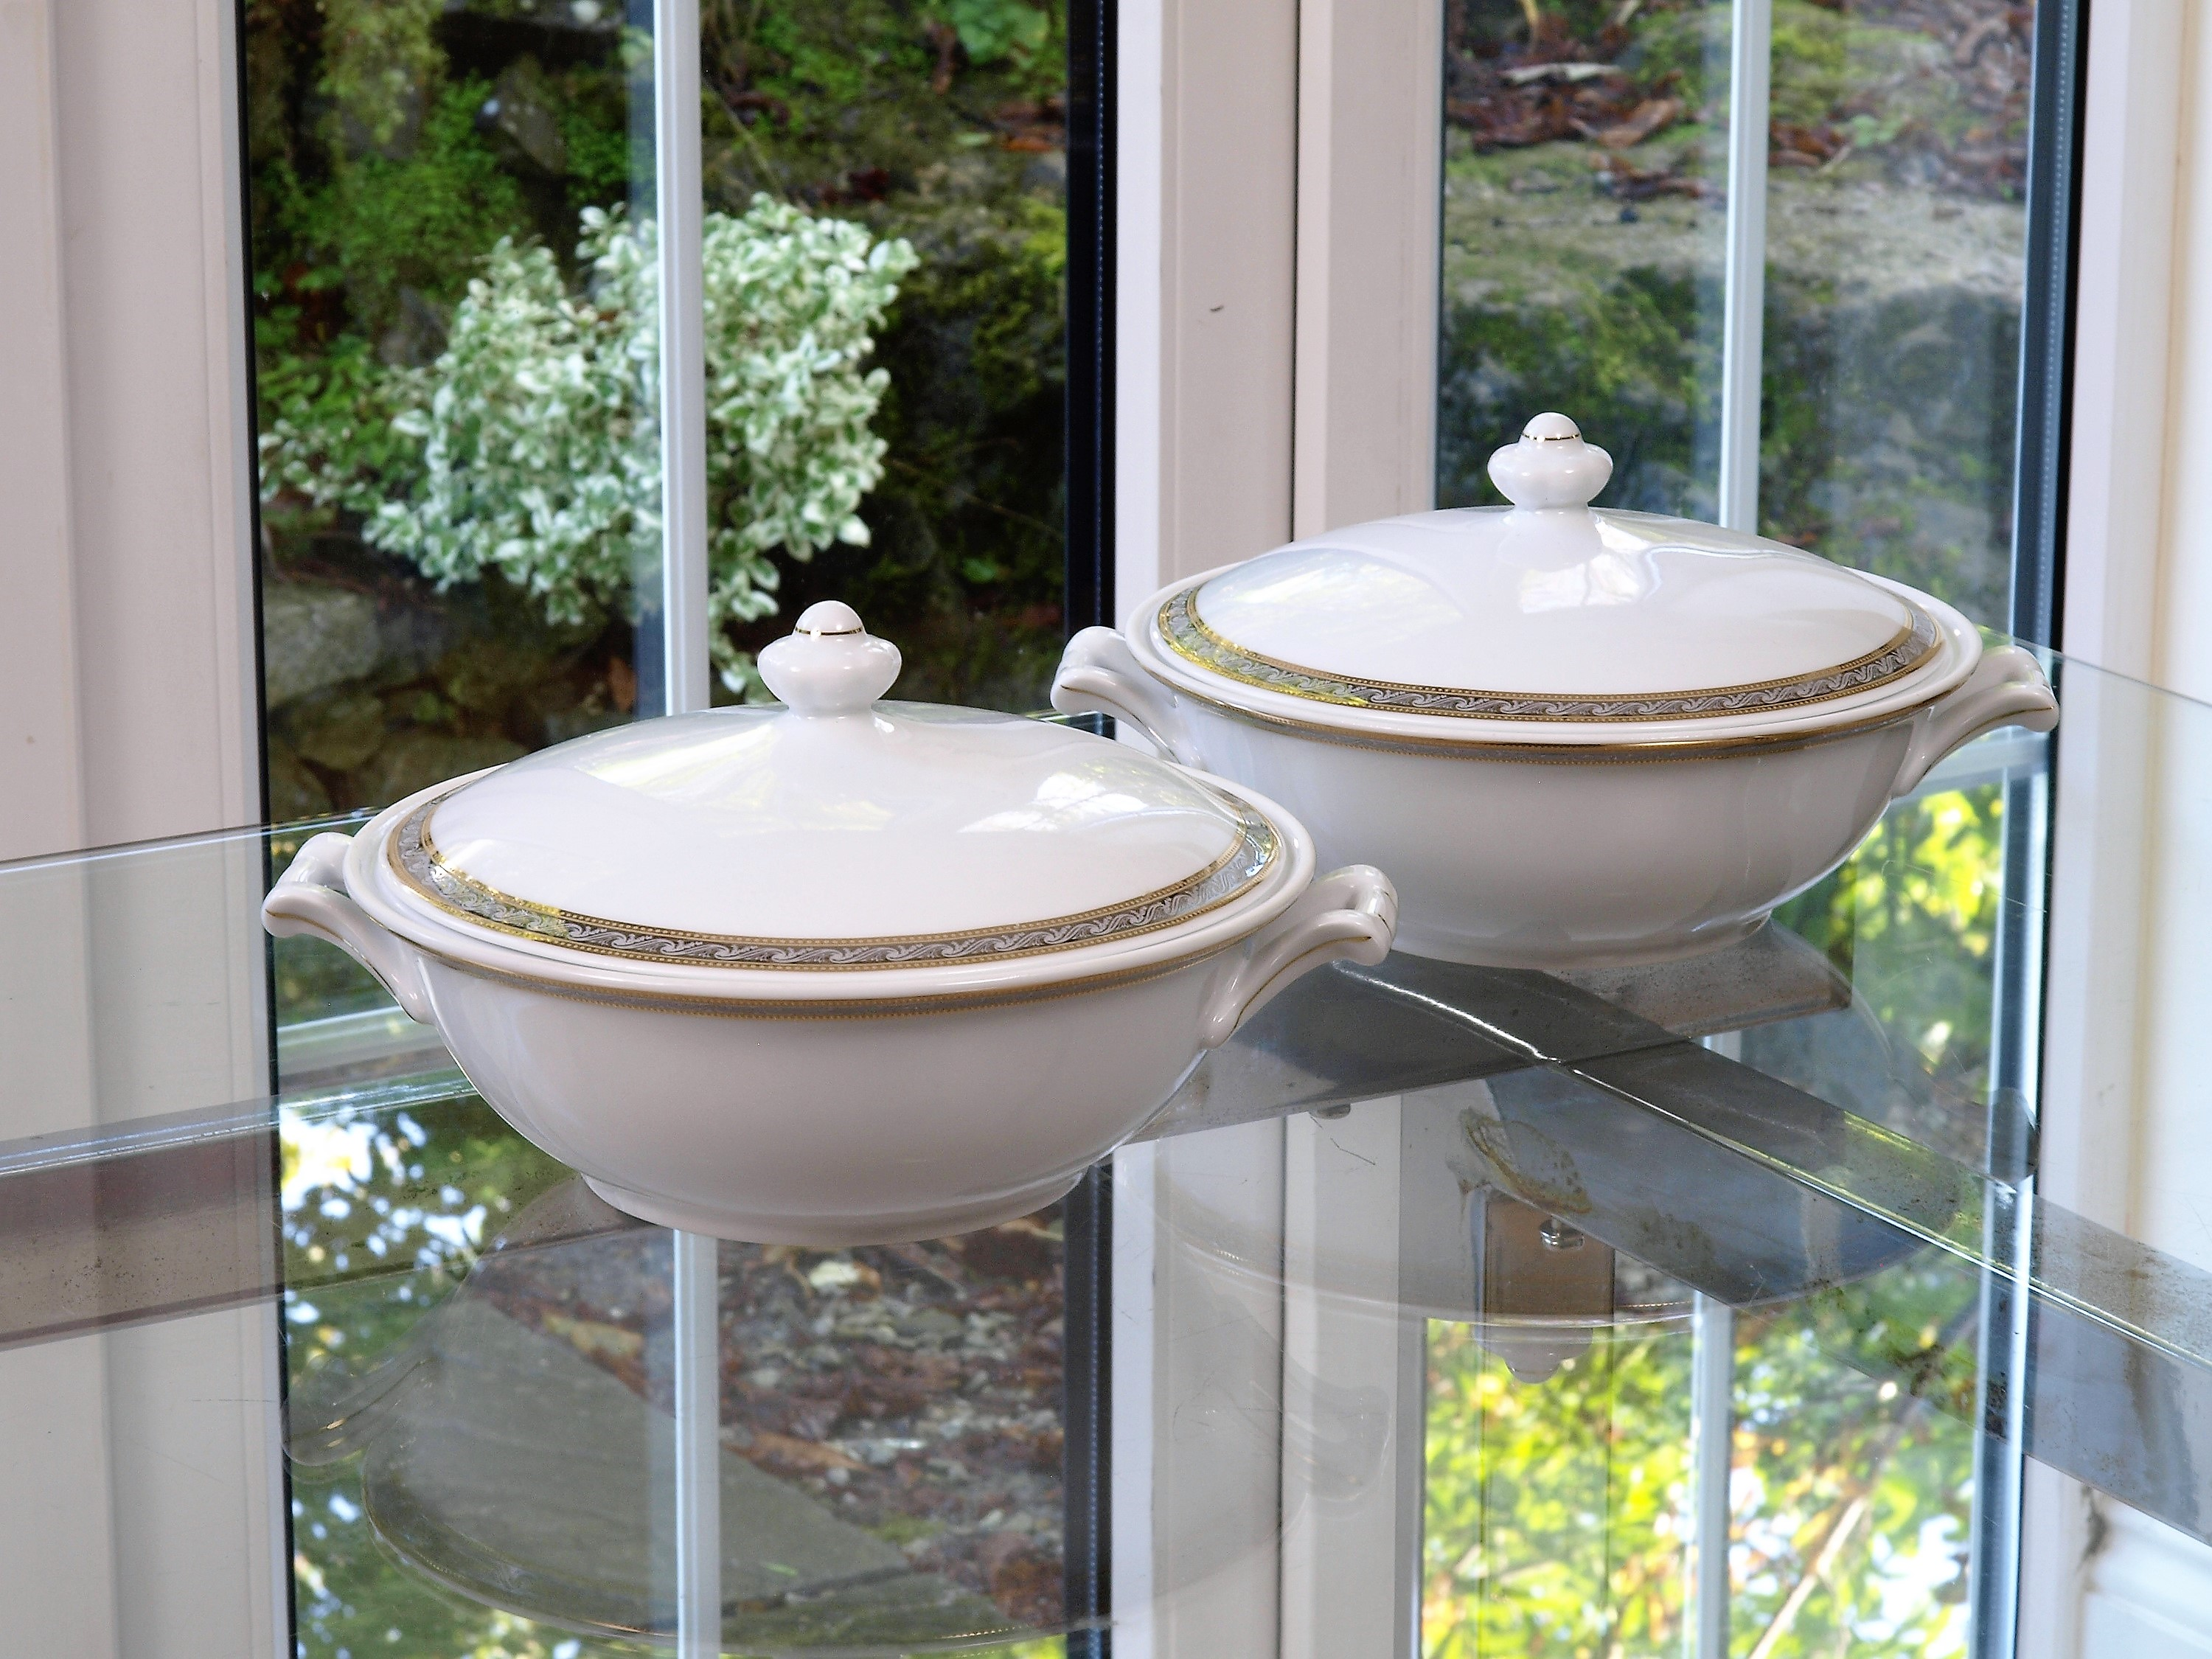 THE MYSOLICE 96 PIECE DINNER SERVICE